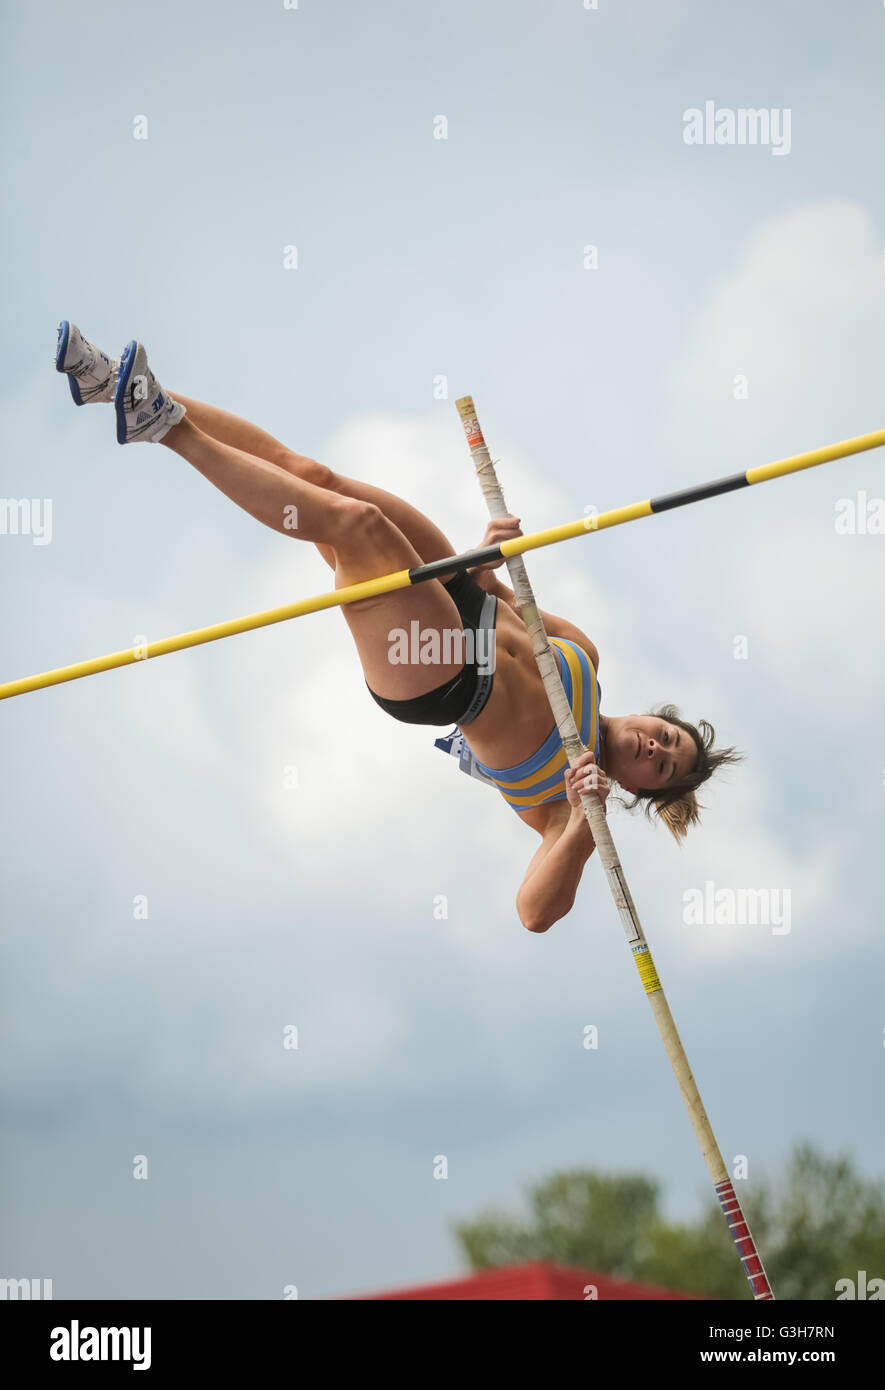 A pole vault athlete photographed in the air - Stock Image